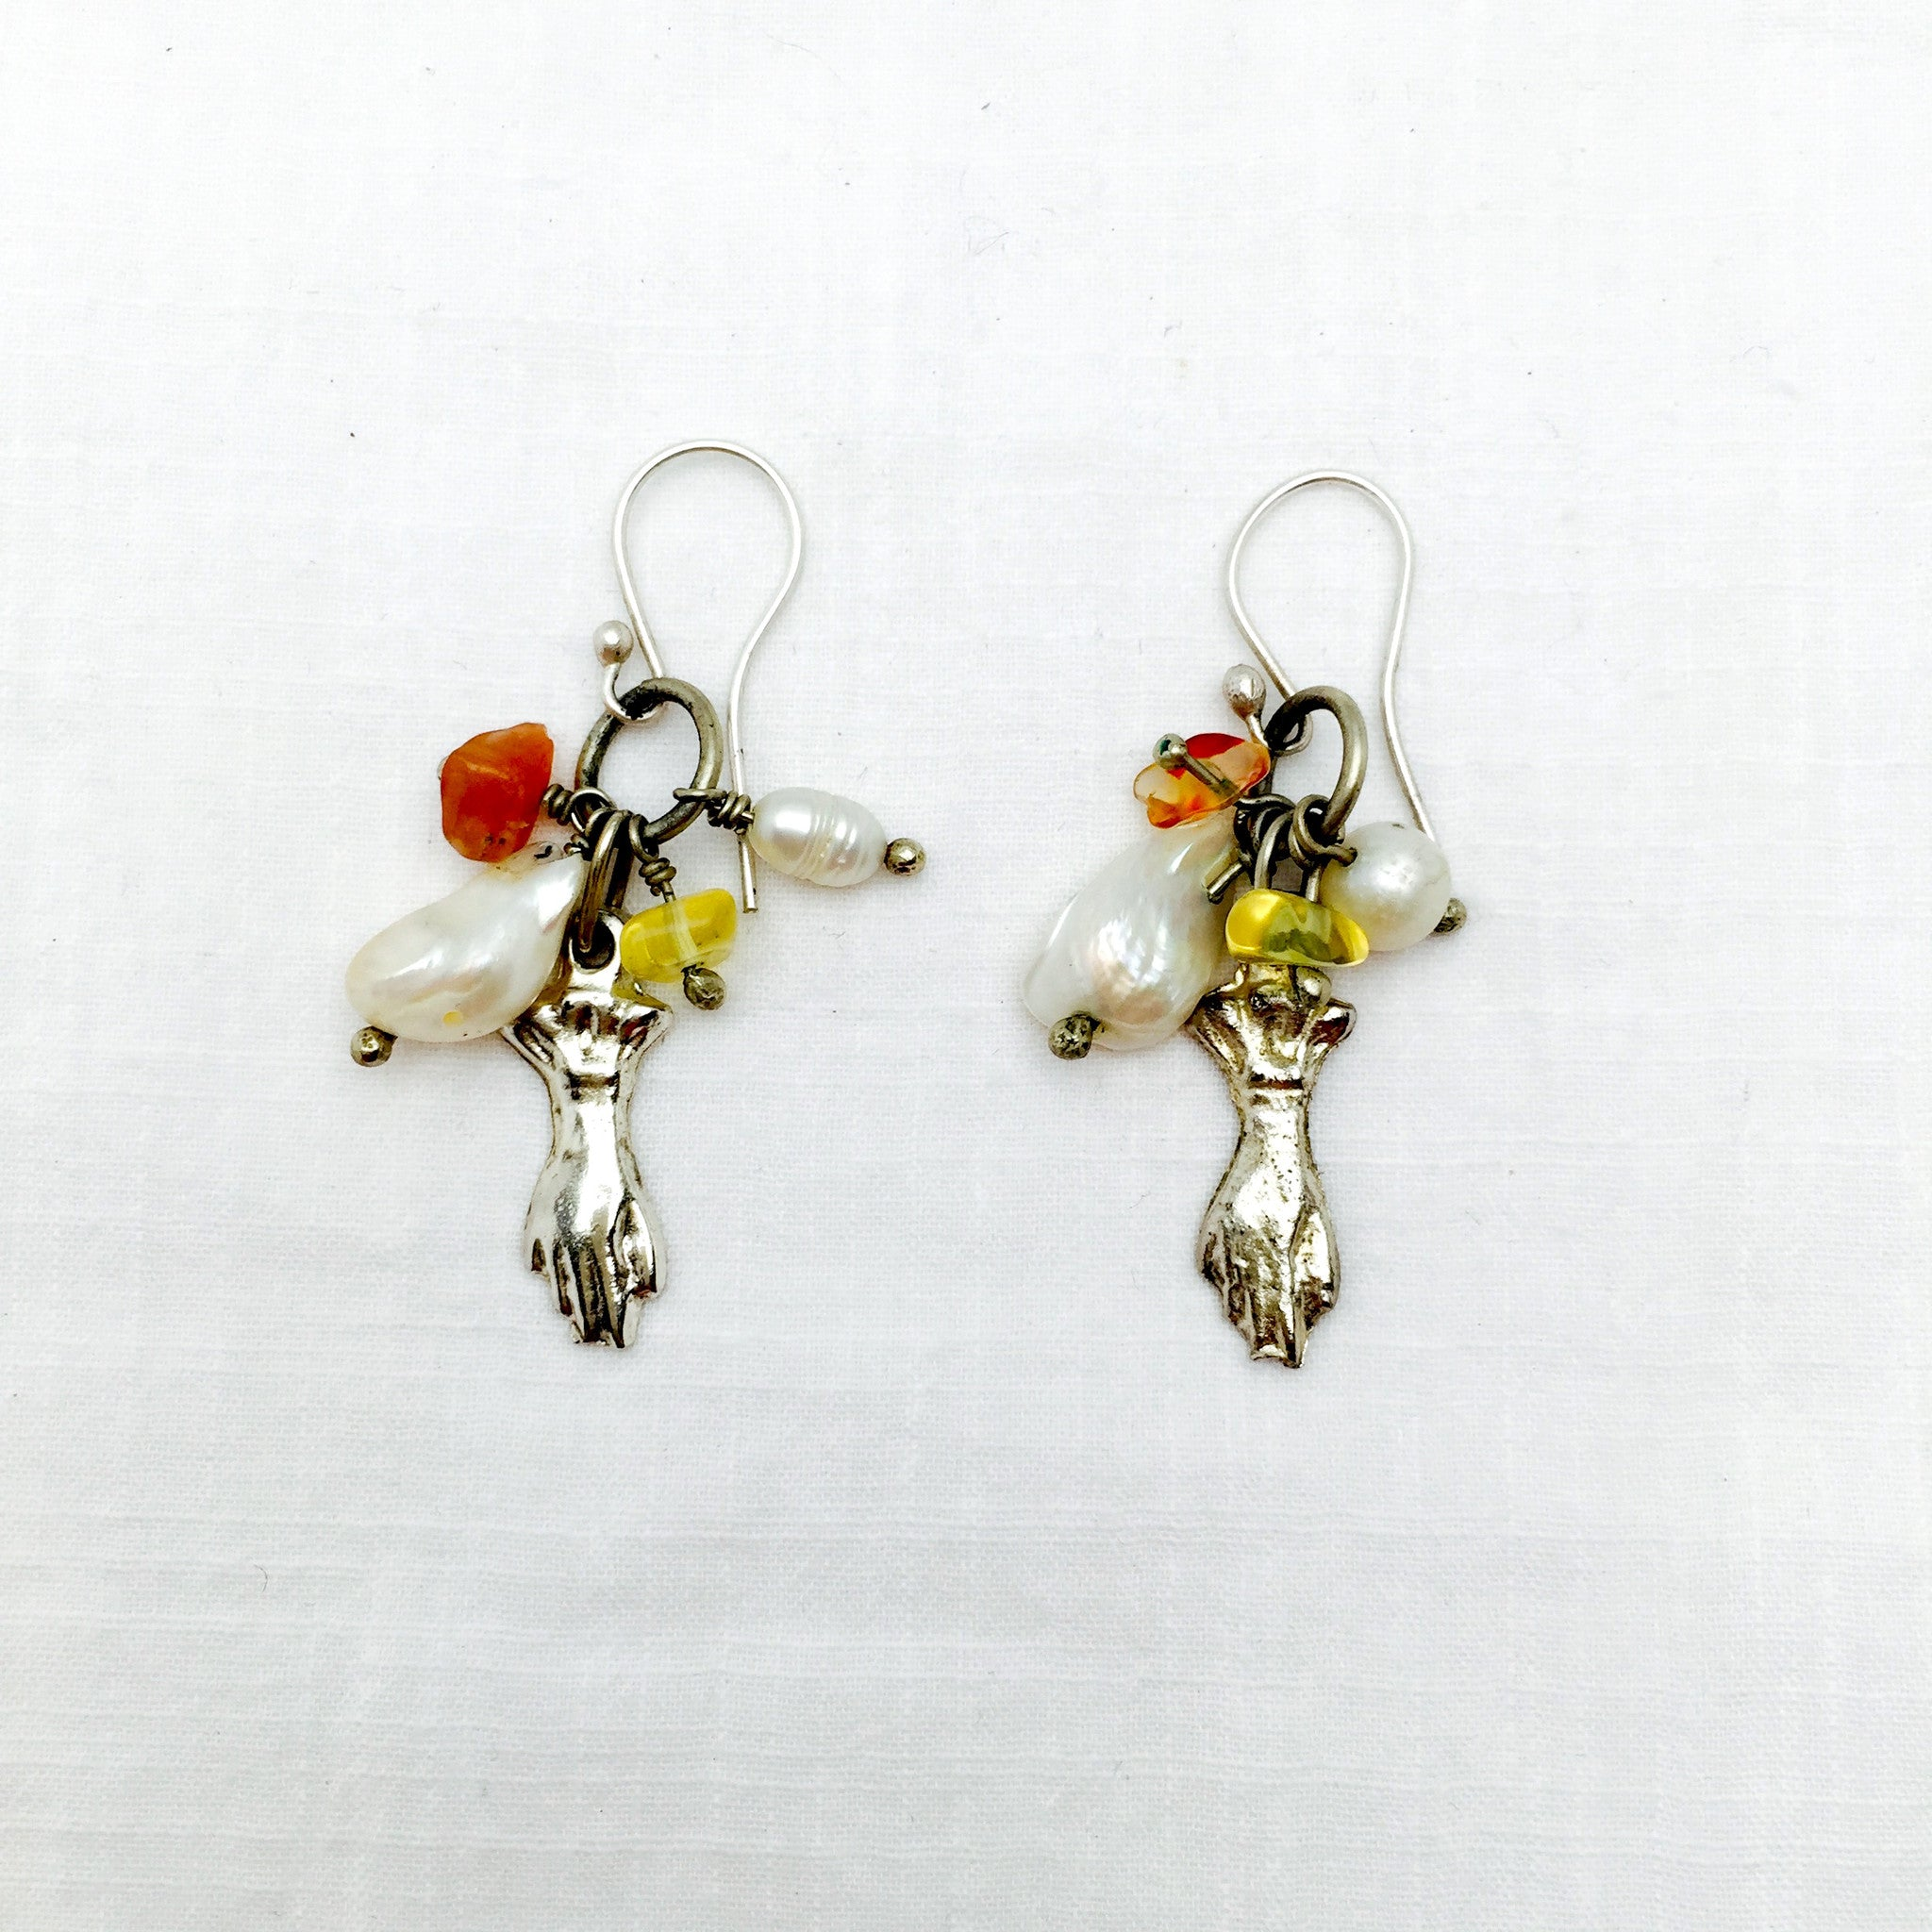 Agatha milagro earrings